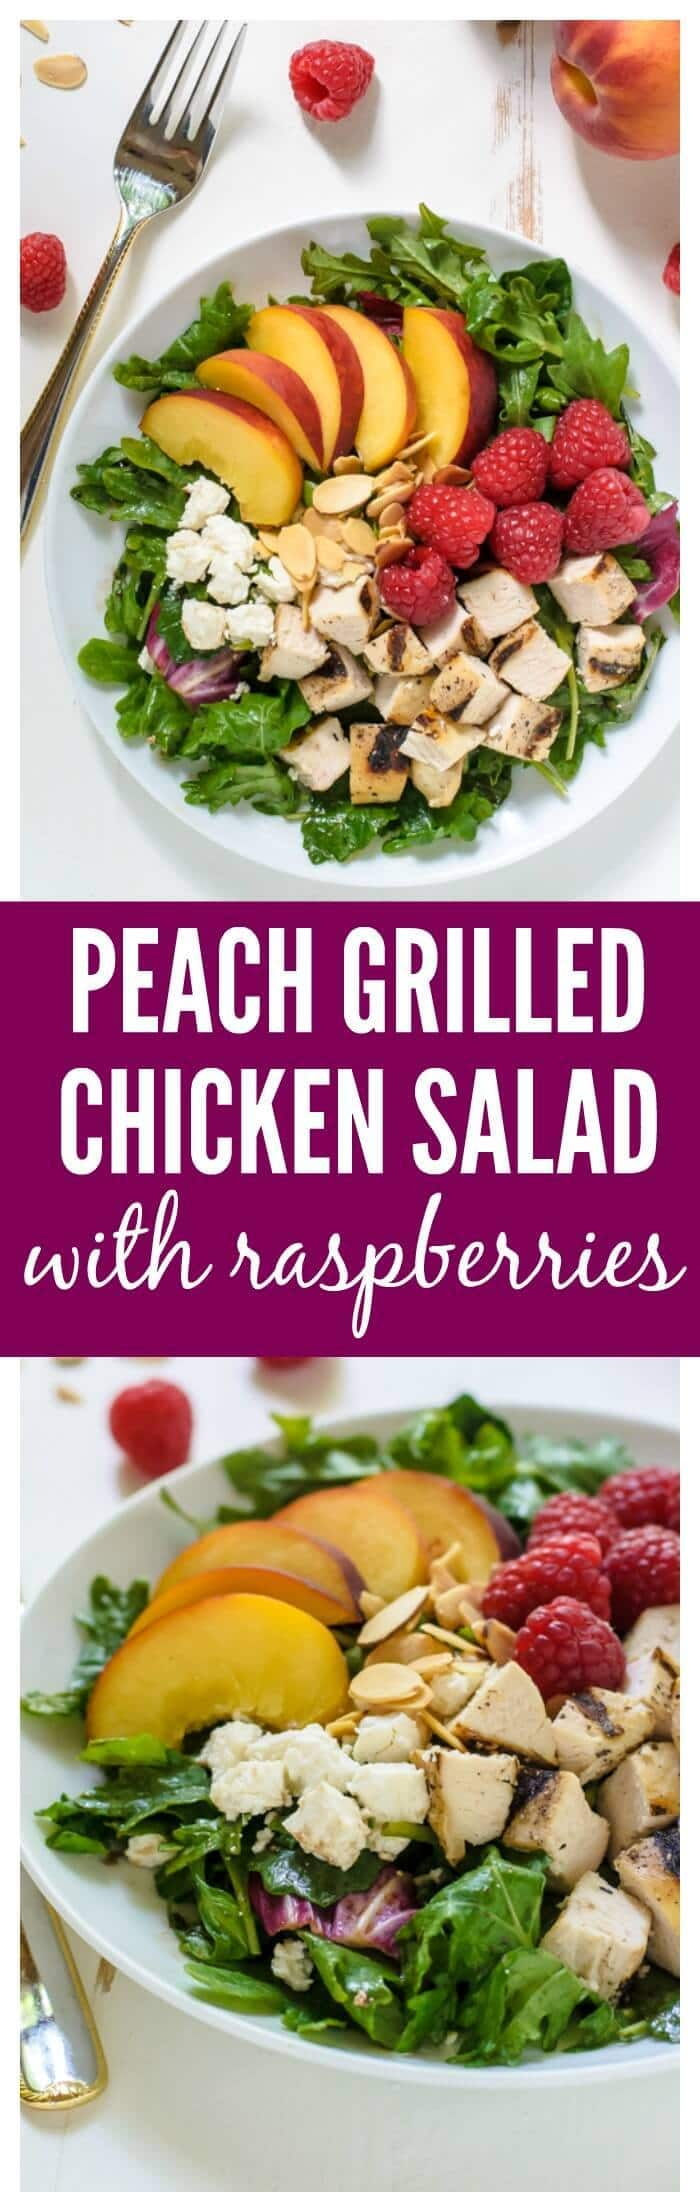 Peach Salad with Grilled Chicken, Raspberries, and Honey Balsamic Vinaigrette